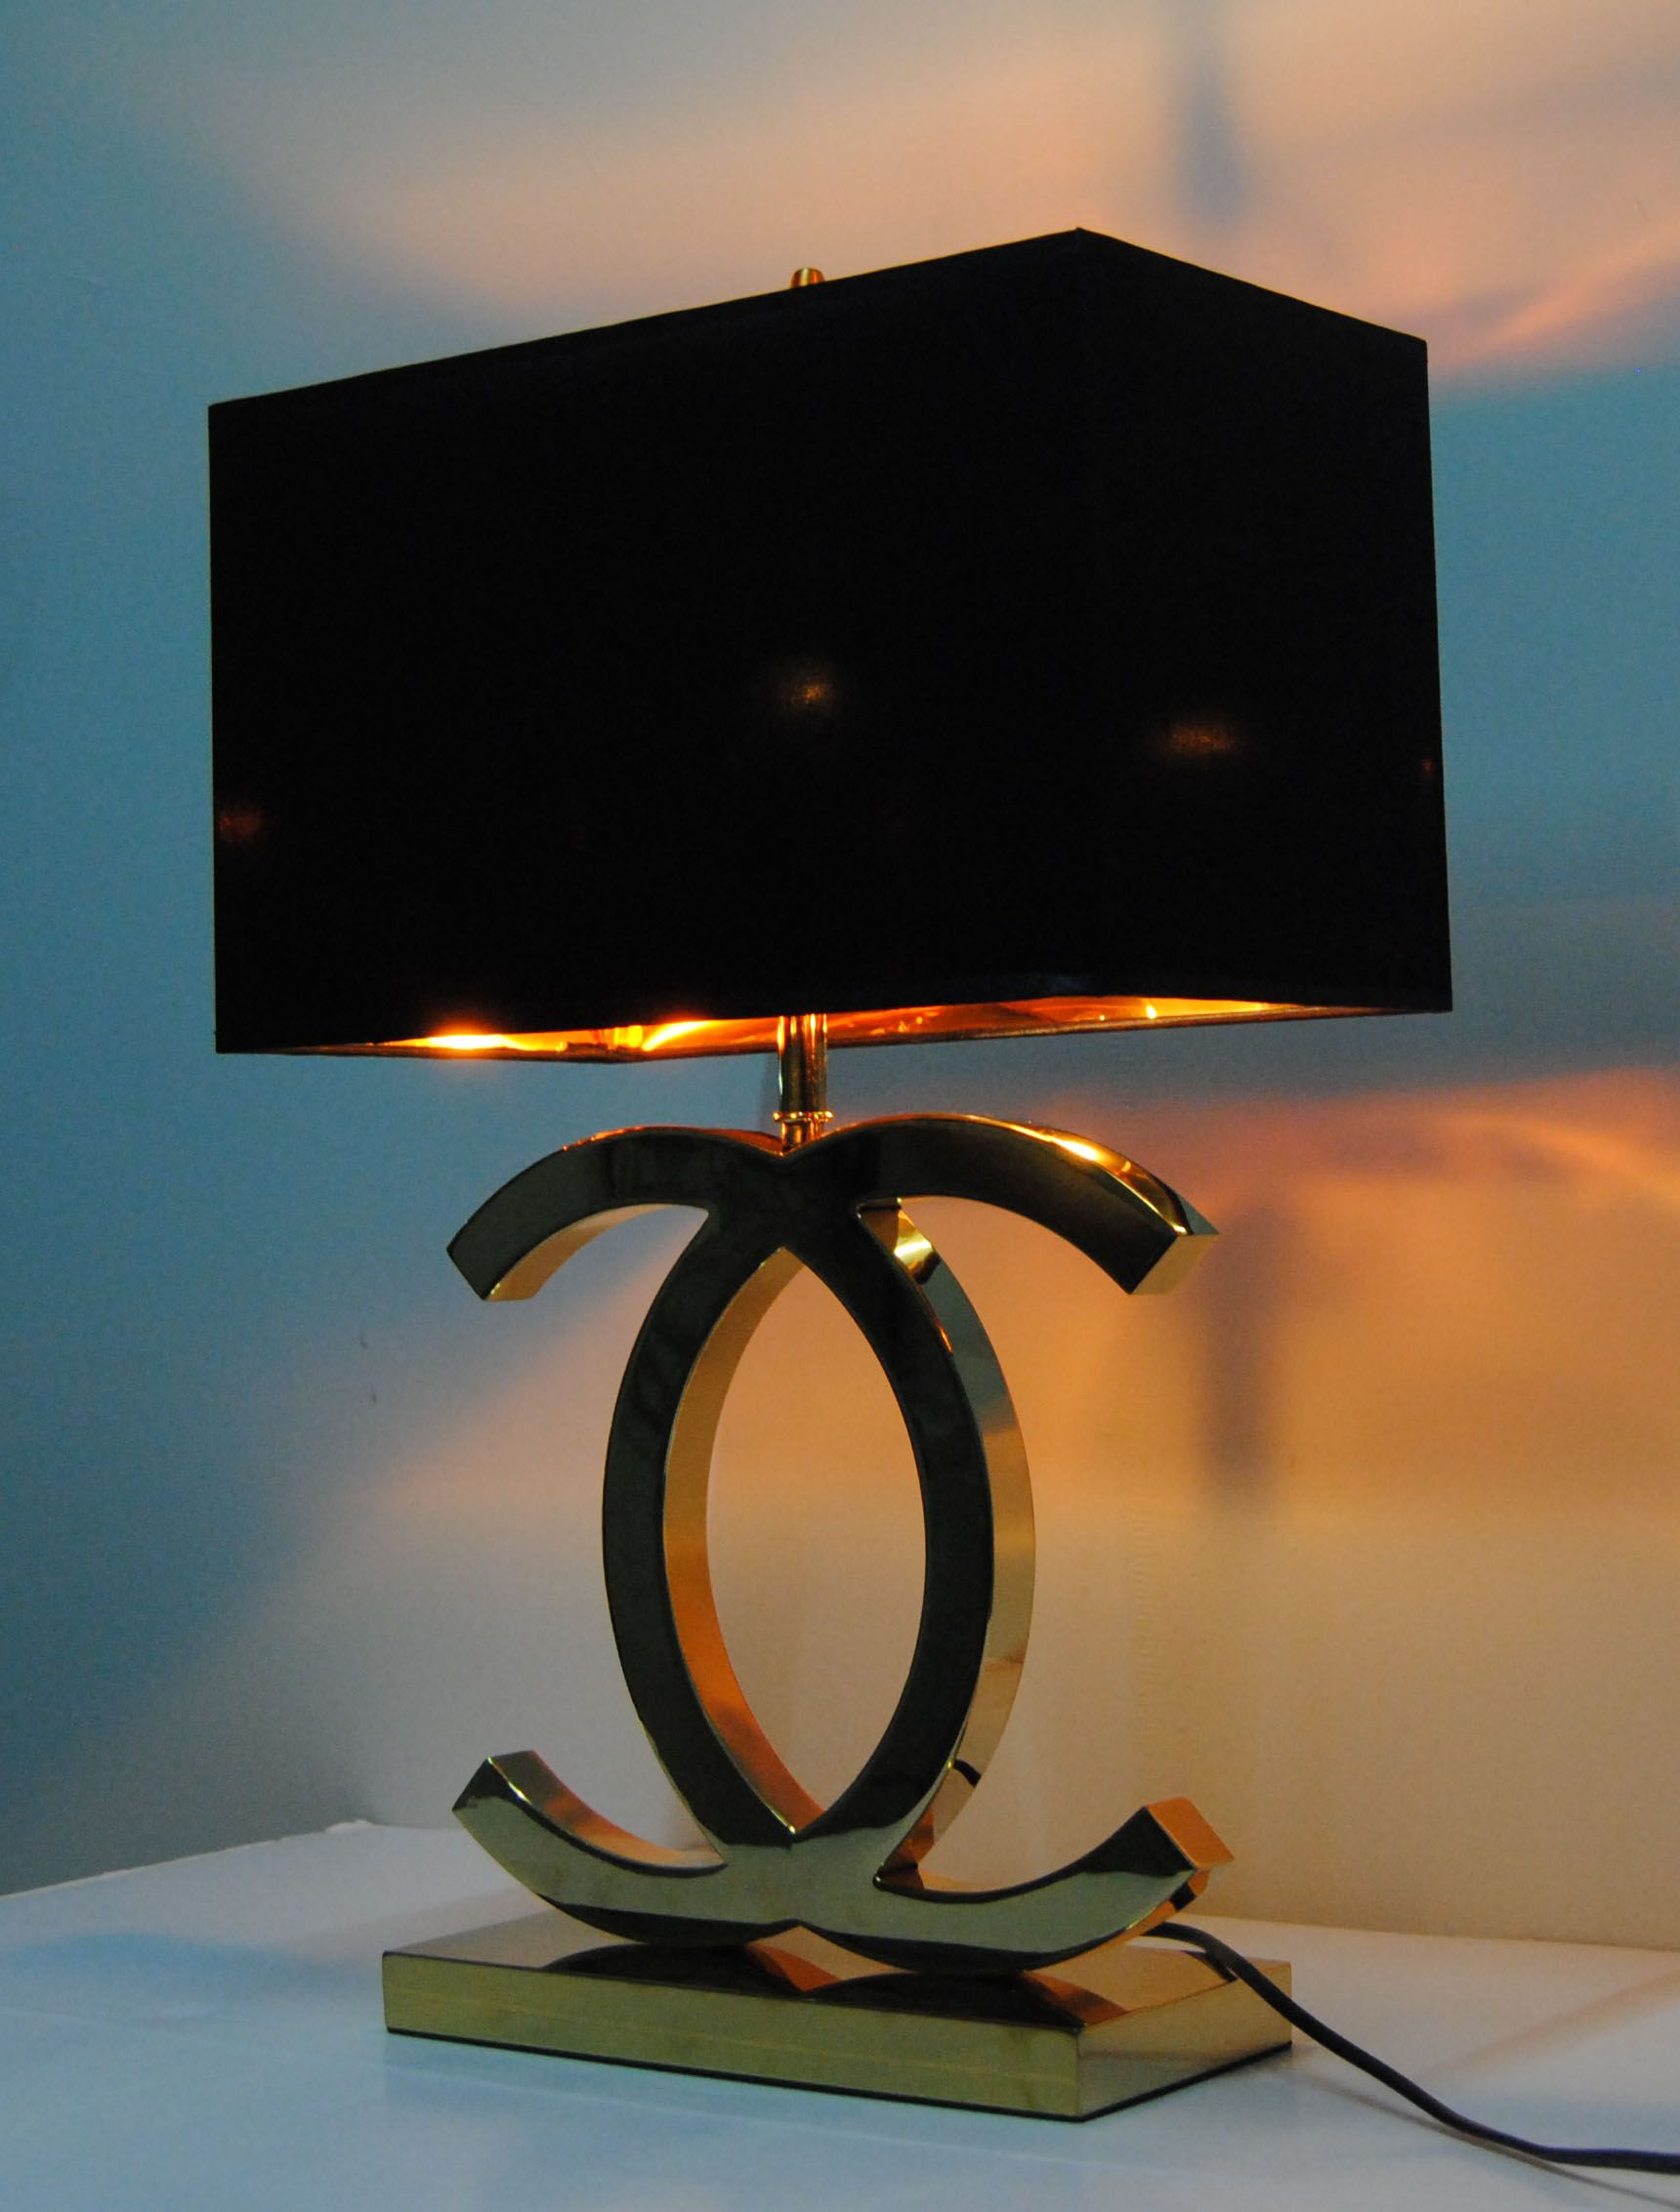 Chanel Lamps, Champagne Gold + Black Lampshade 100 USD Online Sales Cc Dior  Lamp